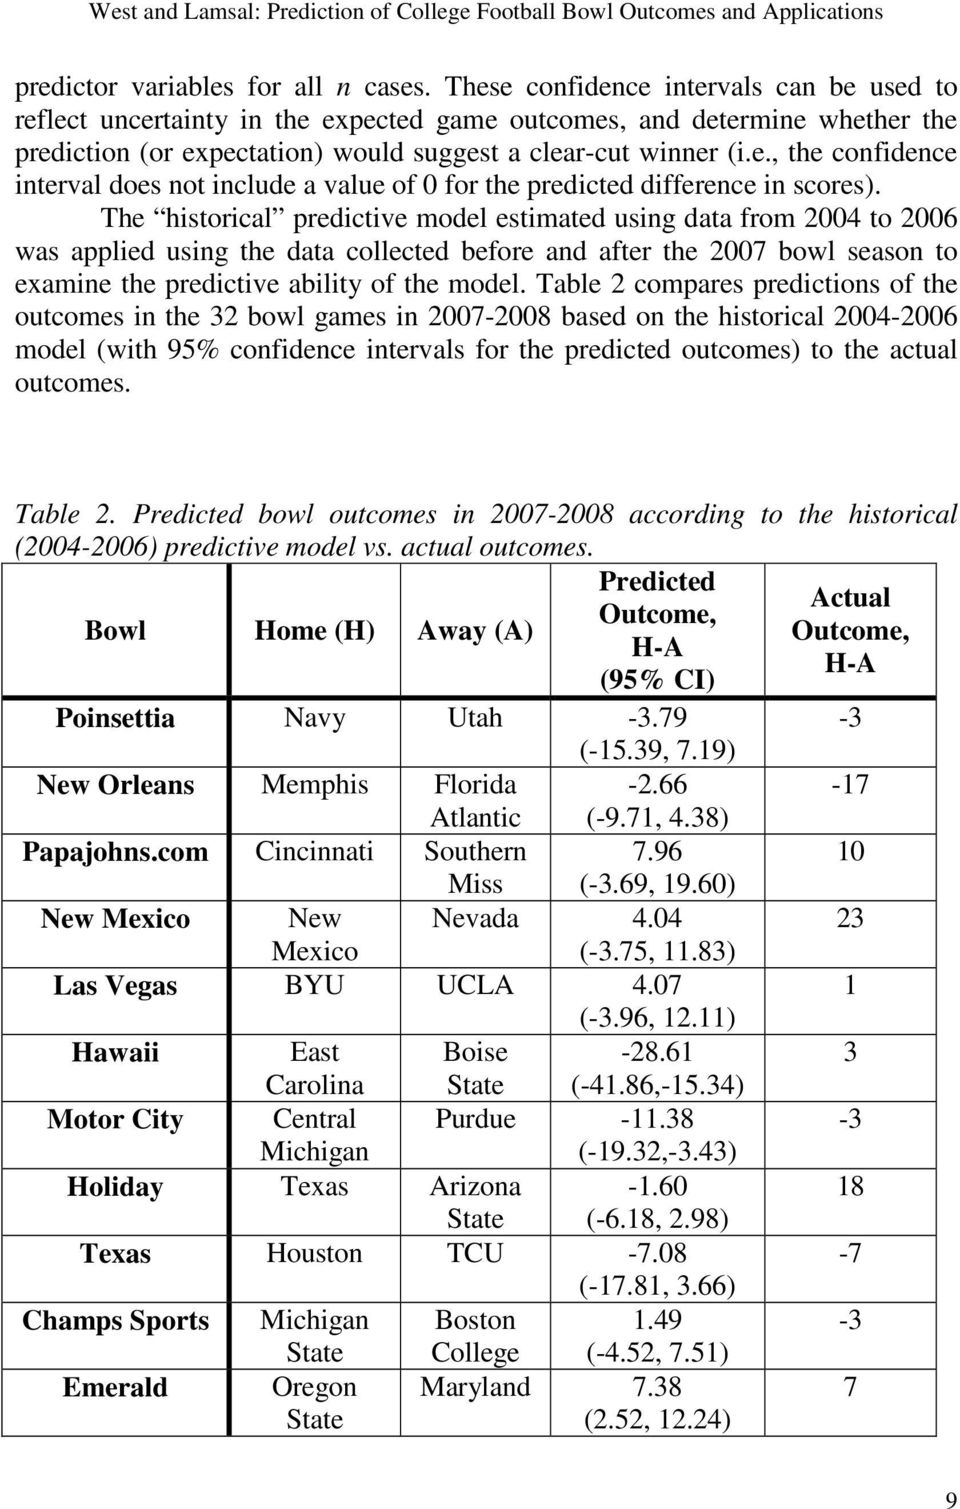 The historical predictive model estimated using data from 2004 to 2006 was applied using the data collected before and after the 2007 bowl season to examine the predictive ability of the model.